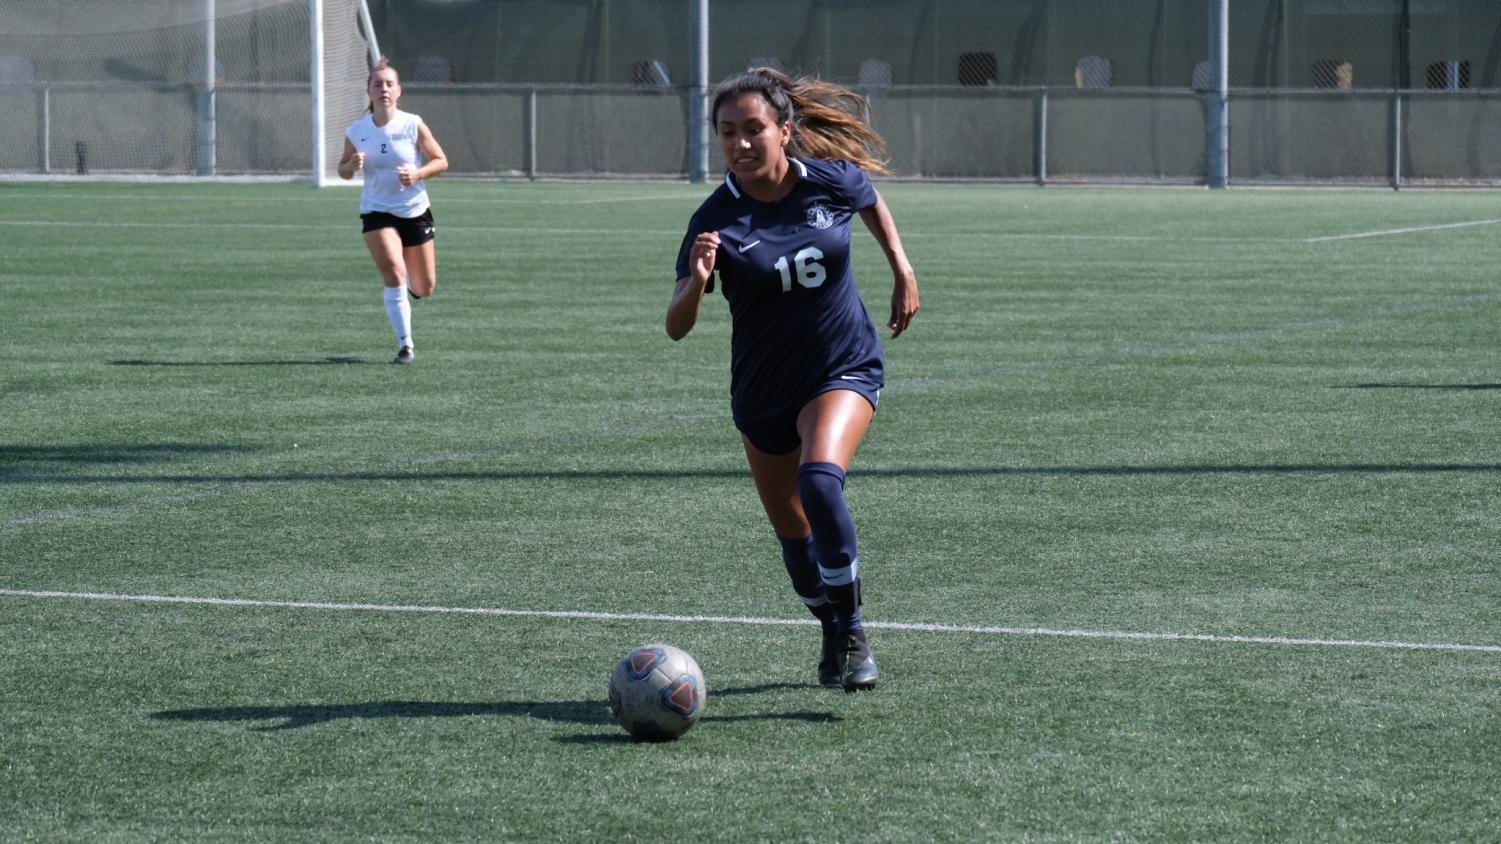 El Camino College Women's Soccer team forward Monica Bernardino pushes the ball passed a Moorpark defender during the first half of the match against Moorpark College on Friday, Sept. 27 at Warrior Field. Bernardino scored the first goal of the game in the 57th minute and her seventh goal on the season. David Odusanya/The Union